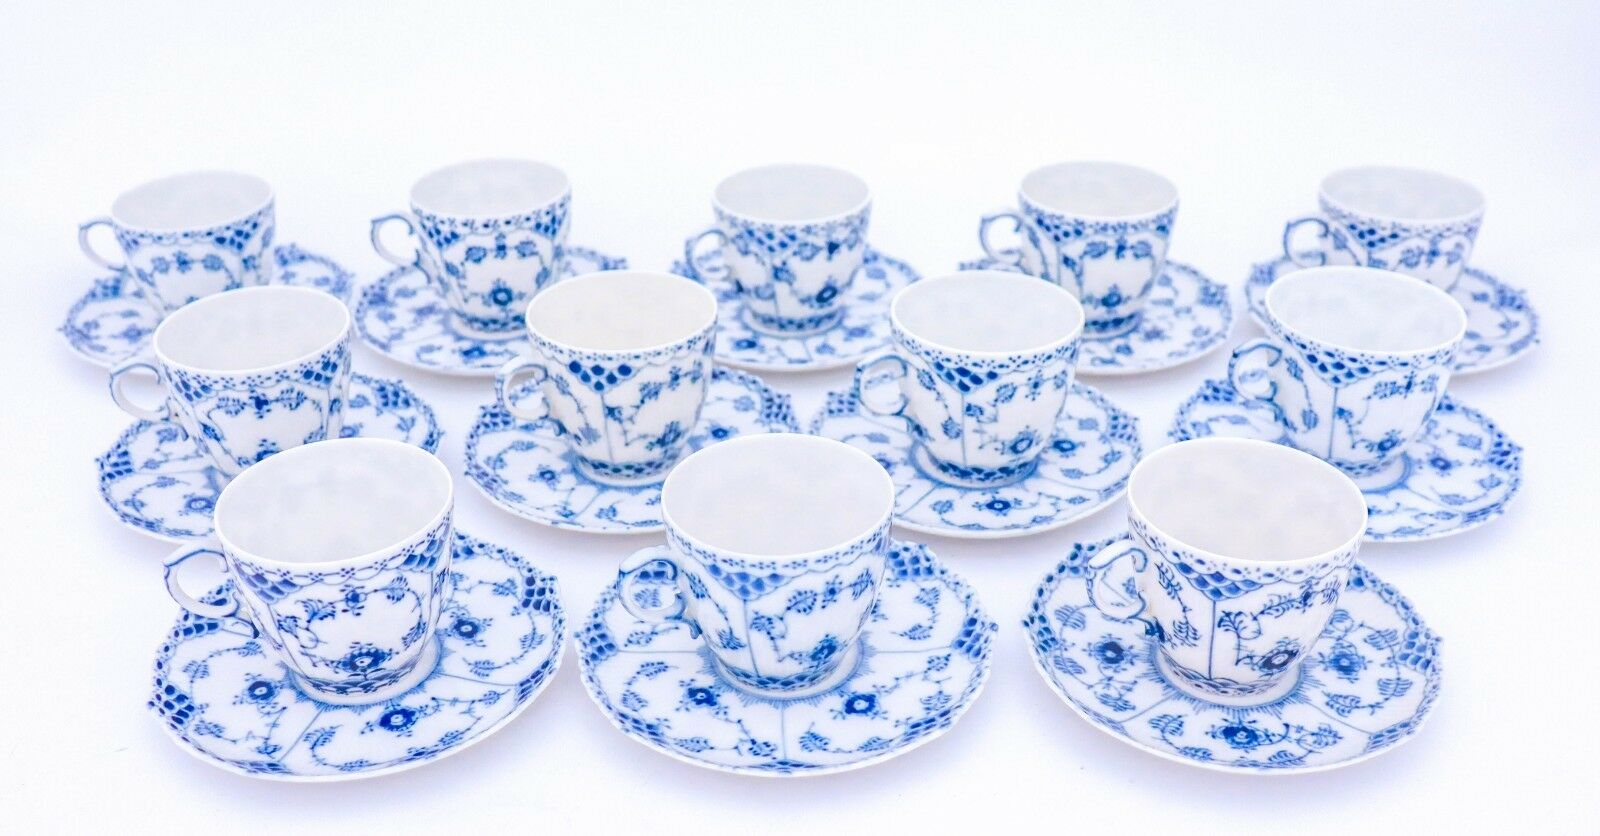 Image 3 - 12 Cups & Saucers #1035 - Blue Fluted Royal Copenhagen Full Lace - 1:st Quality